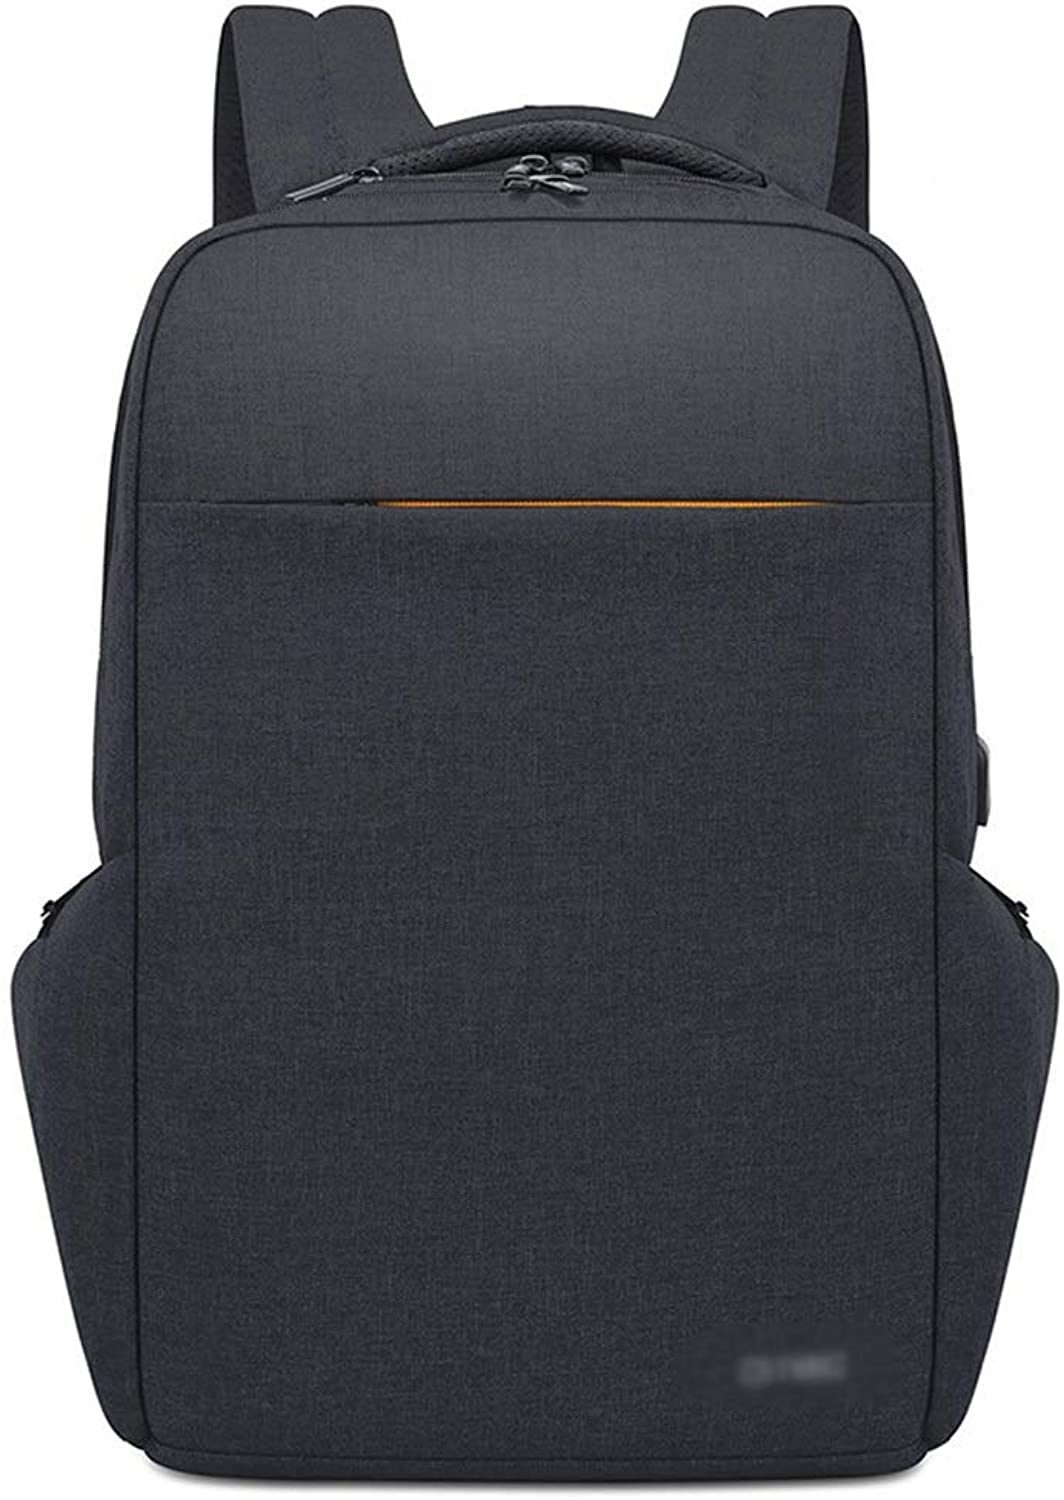 Double Shoulder Large Capacity USB Rechargeable Backpack Travel. (color   Black, Size   17inch)